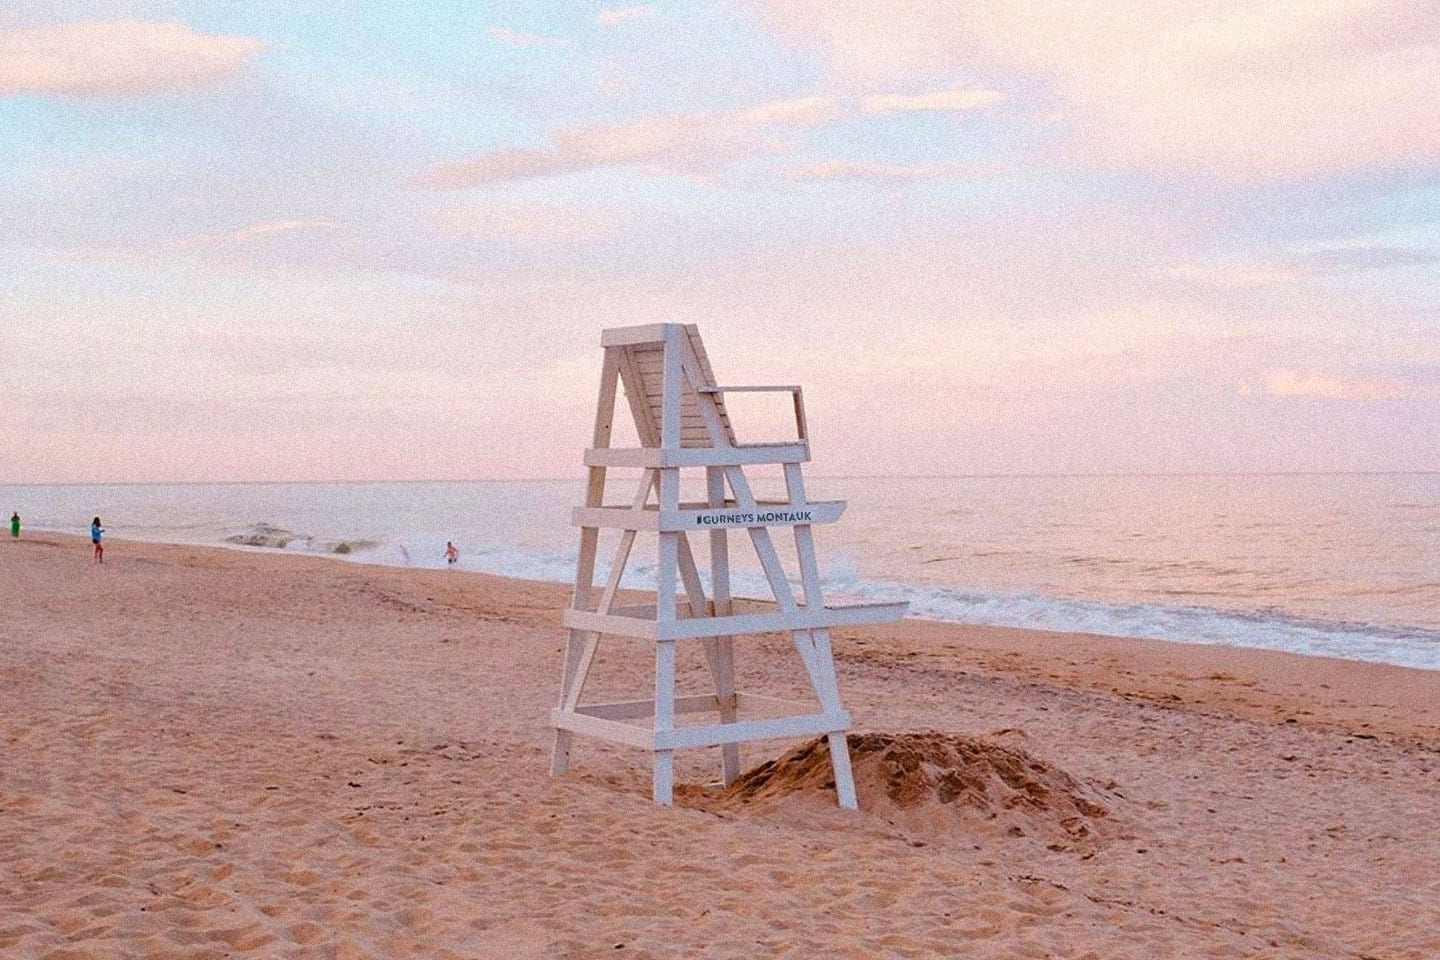 An empty lifeguard stand overlooking the ocean.